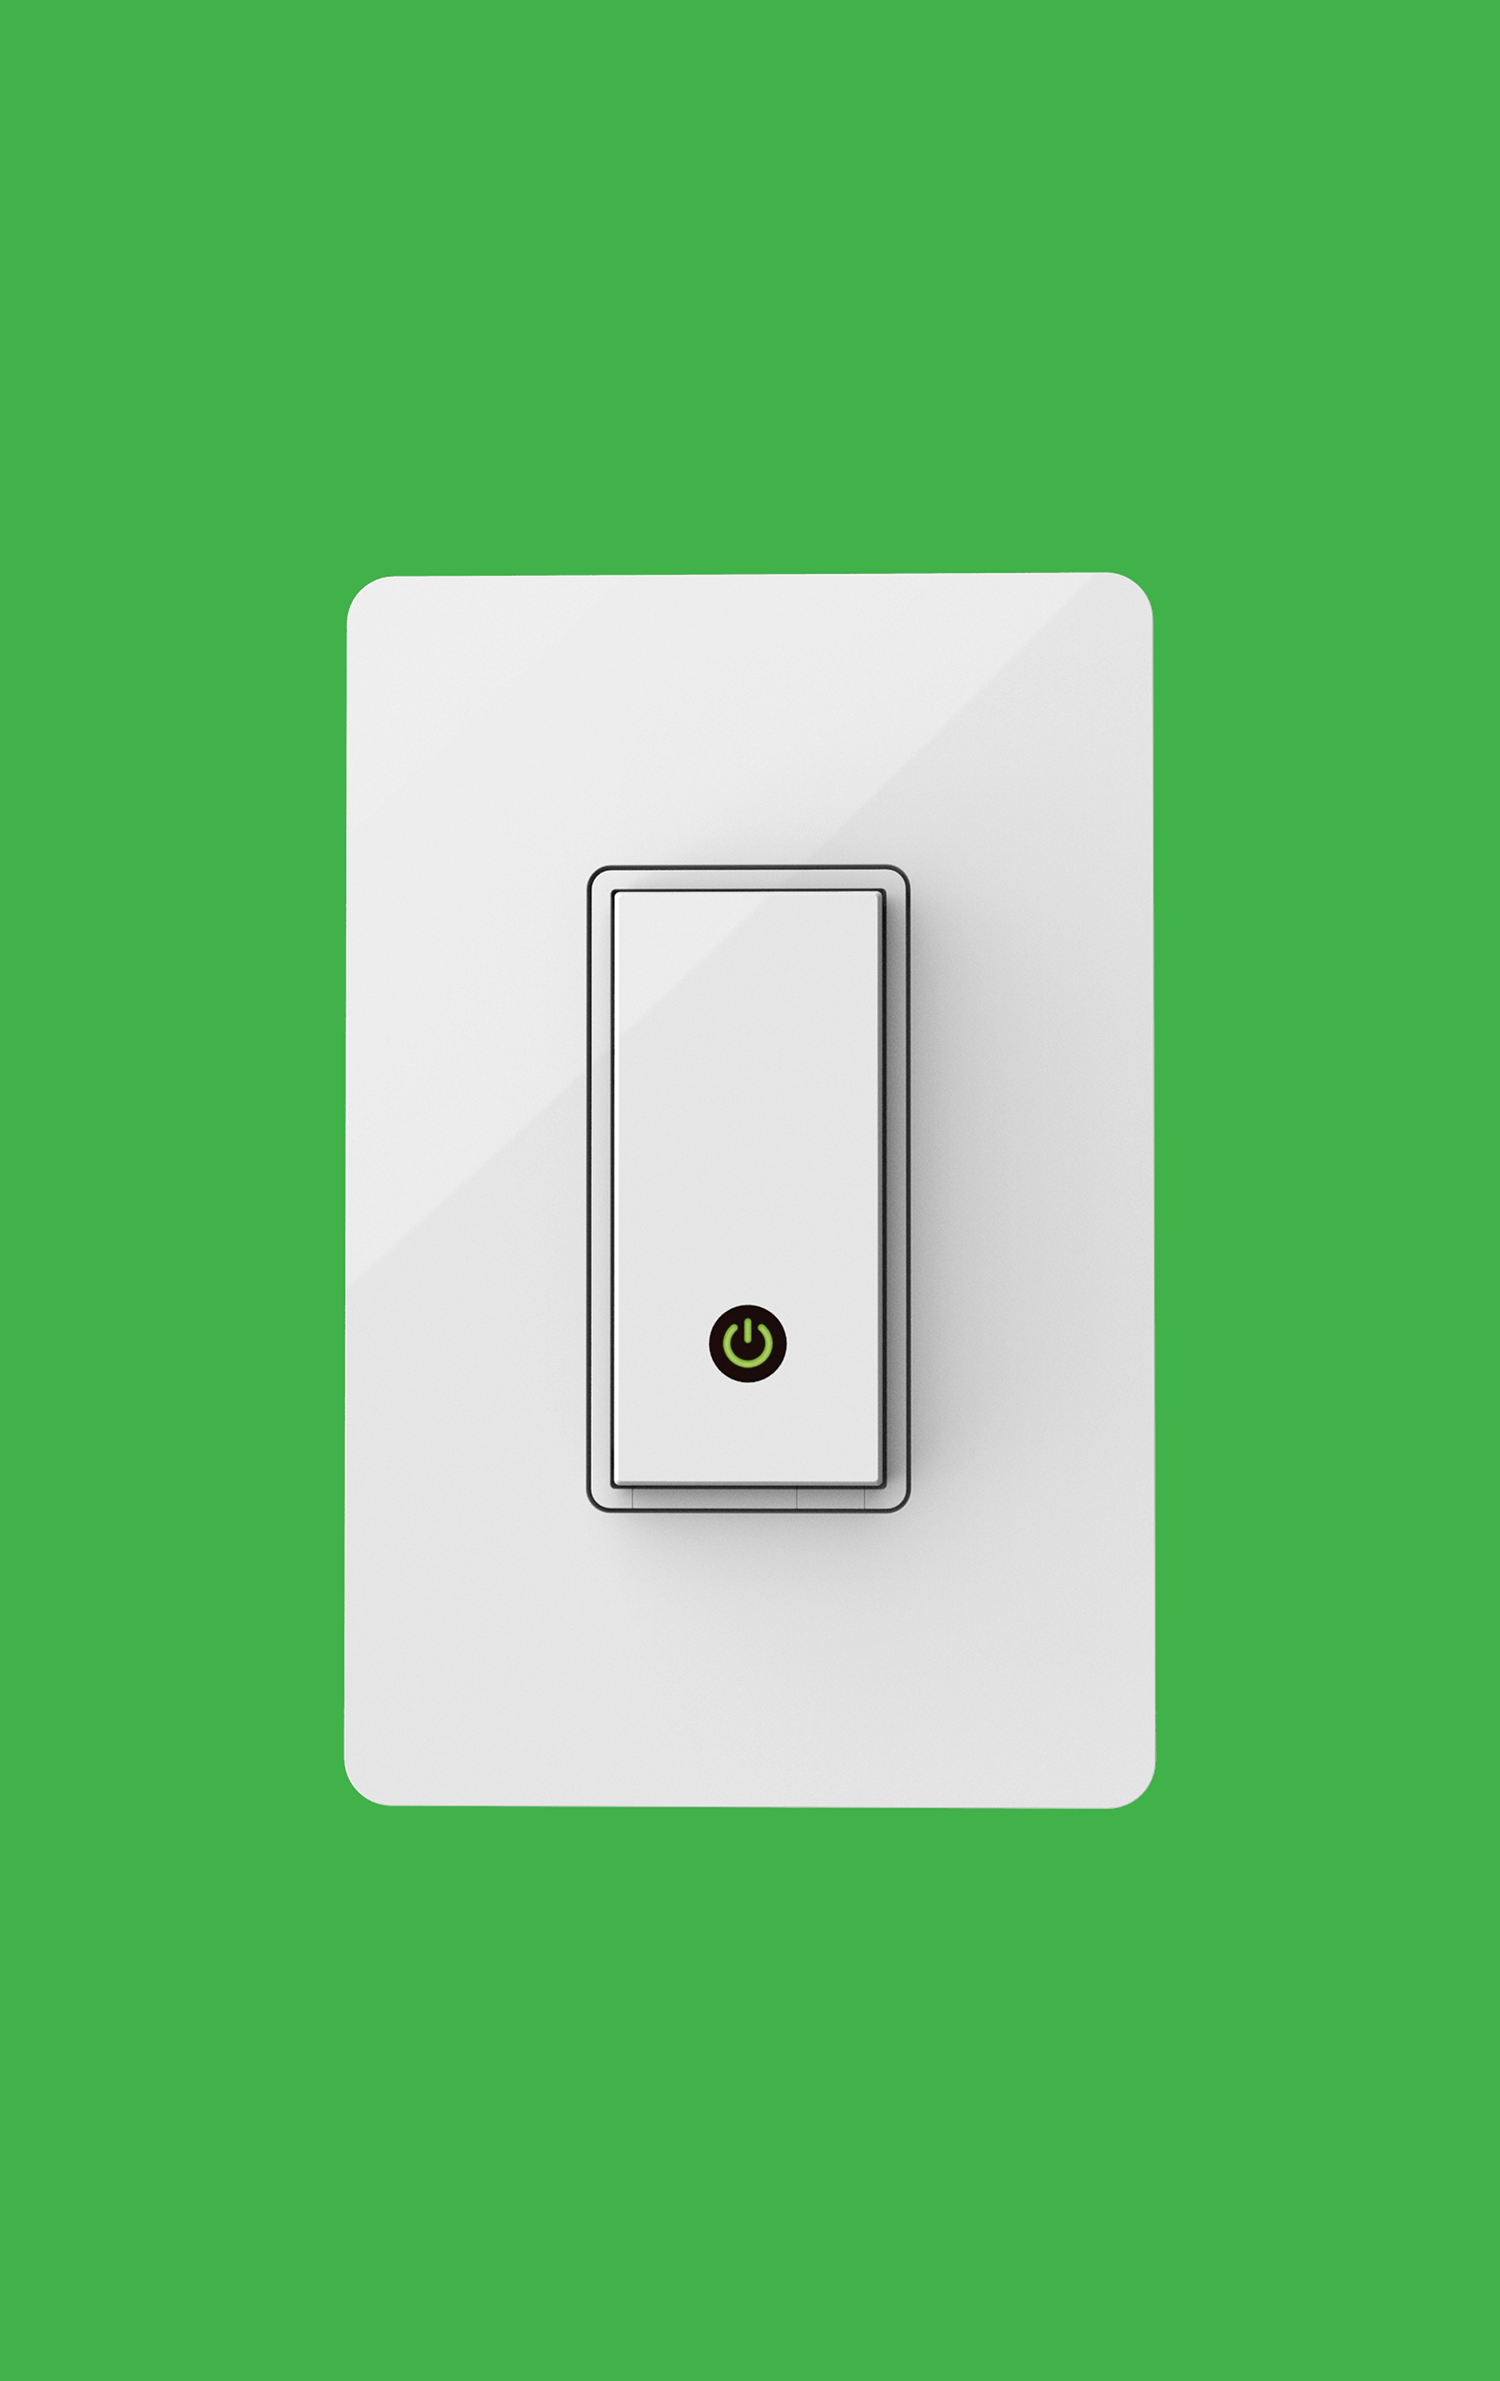 The Wi Fi Enabled Wemo Light Switch Allows You To Turn Lights On And Off Lighting Design Interior Decorative Fluorescent Light Covers Fluorescent Light Covers